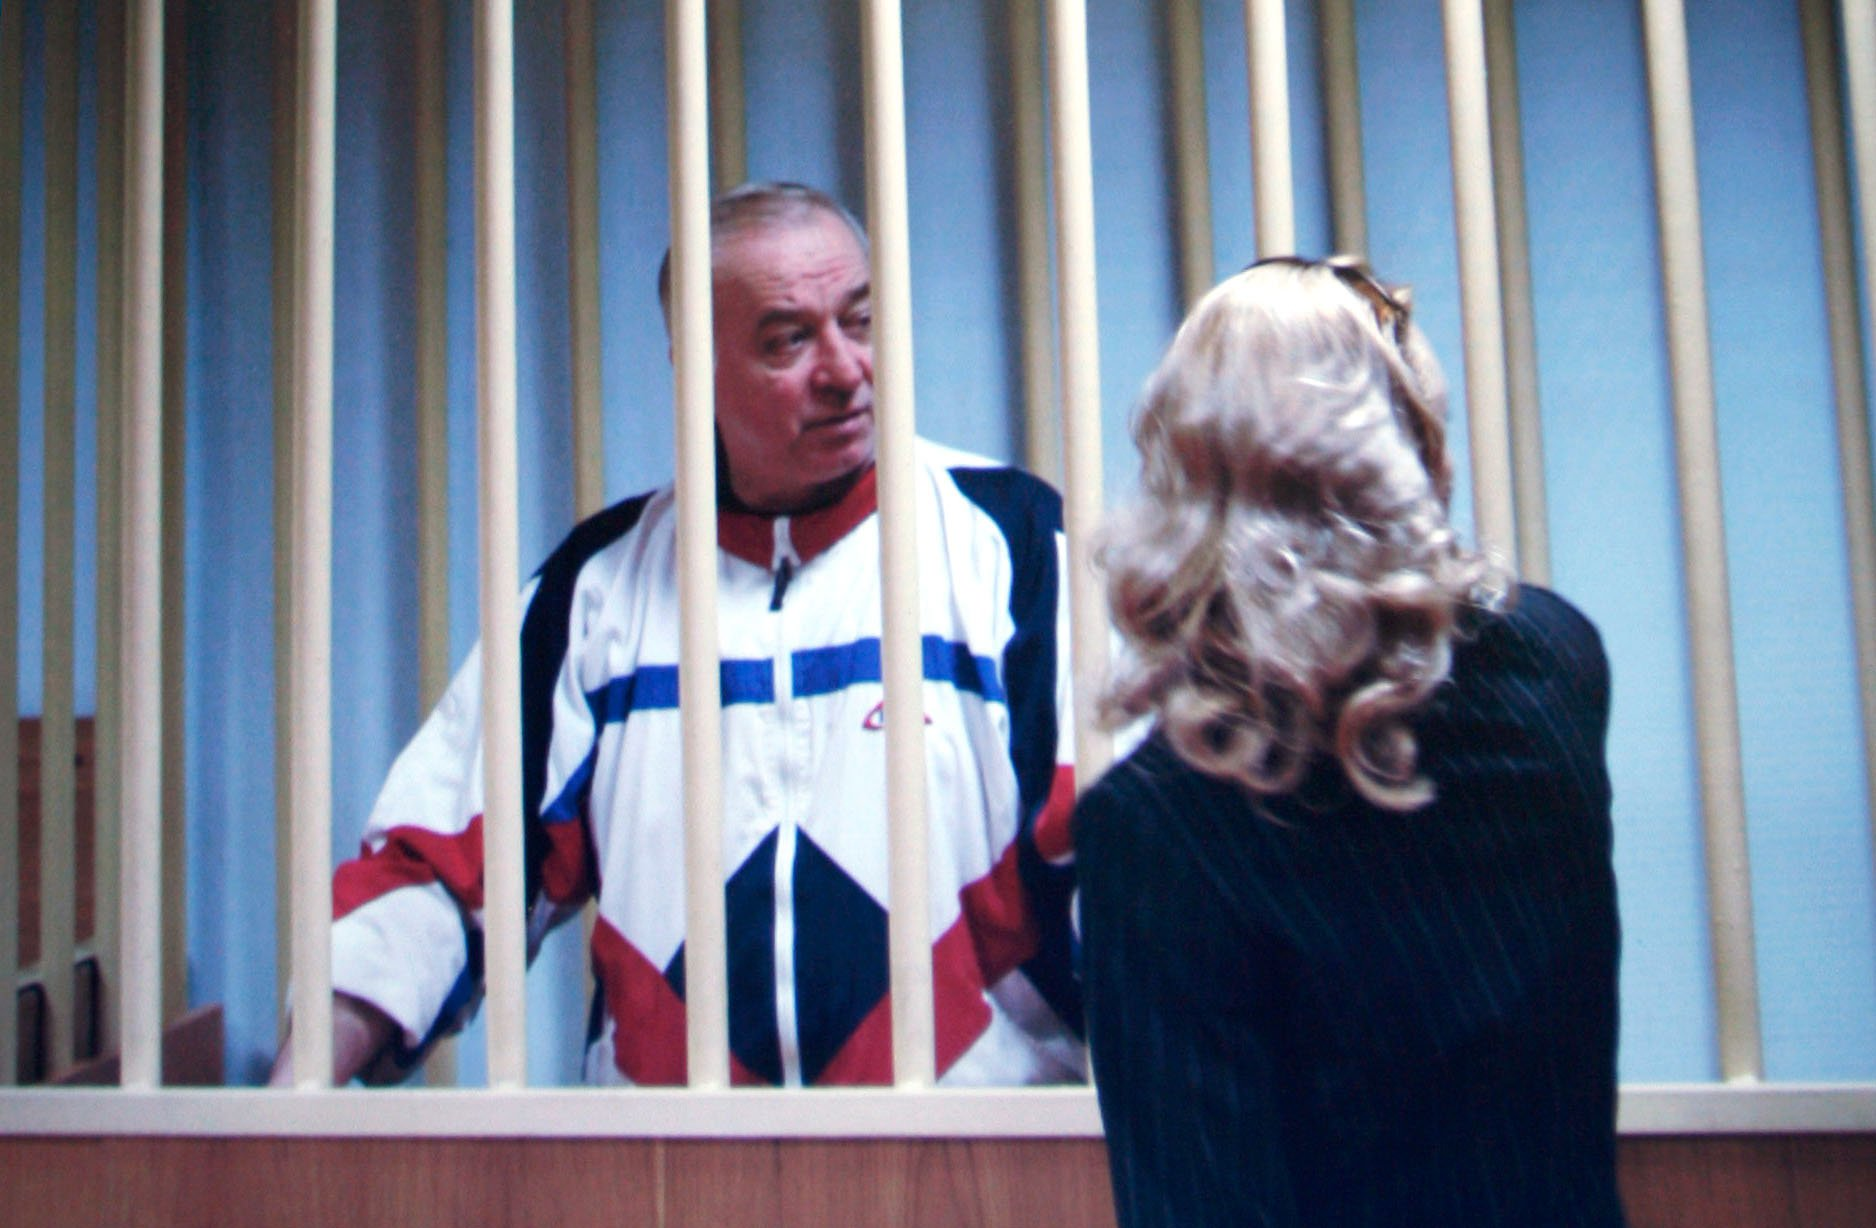 Russian spy Sergei Skripal and daughter were poisoned with nerve agent